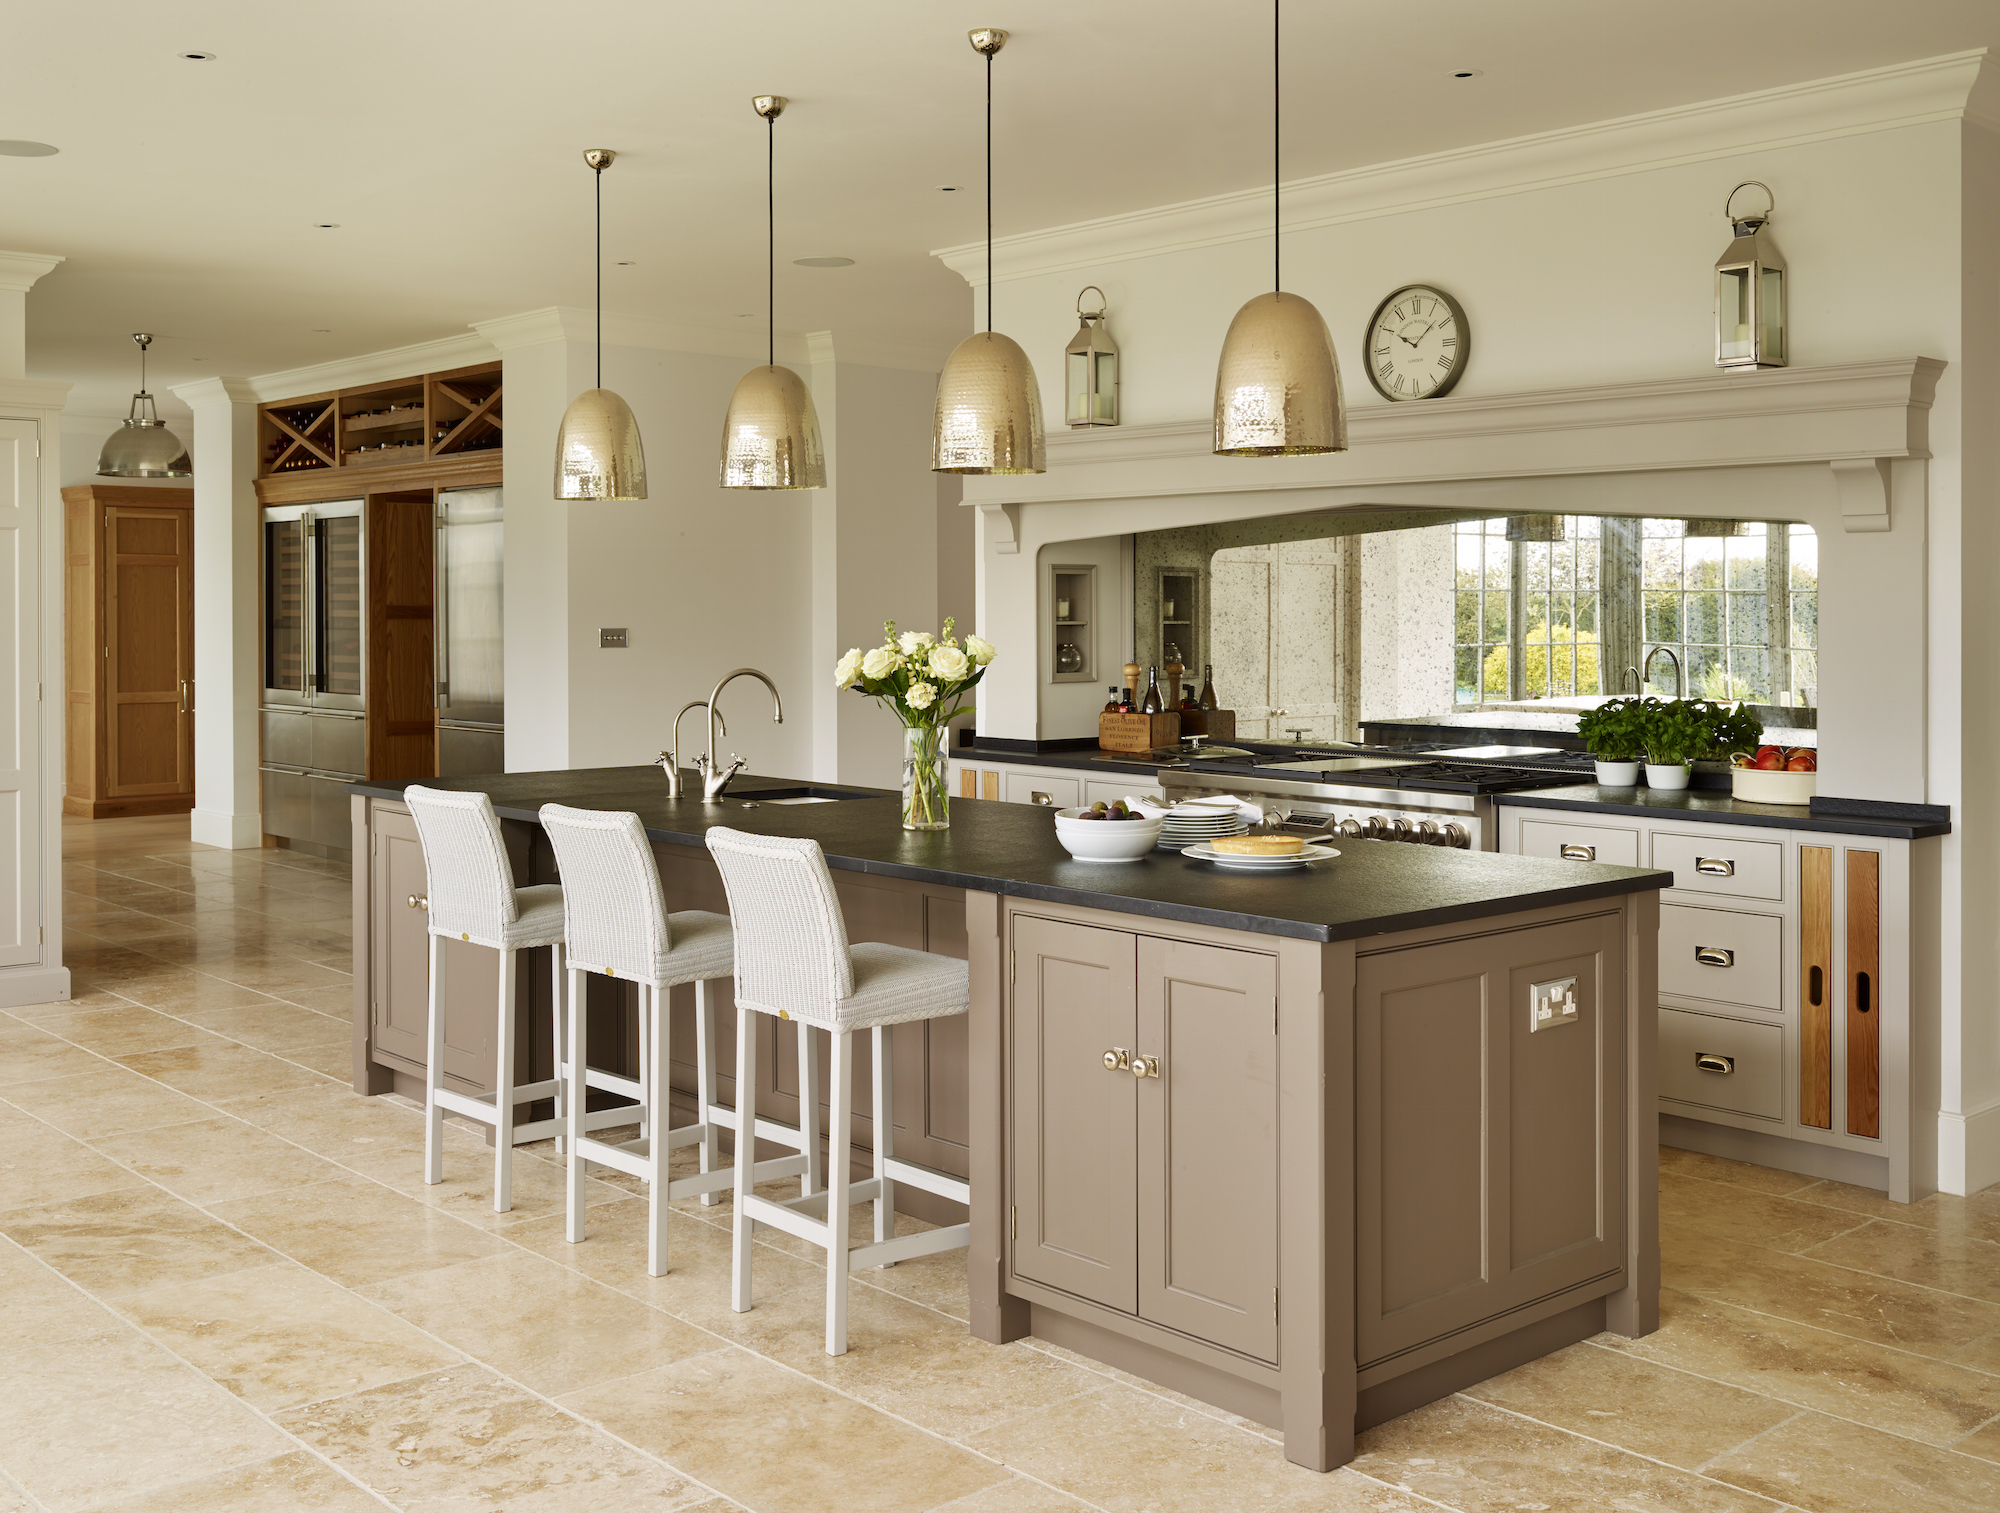 The Island Modular Kitchen Design Looks Perfect With The Four Lamps Hanged  Over The Dining Portion.The Light Brown Color In The Kitchen Looks So  Beautiful ... Part 72